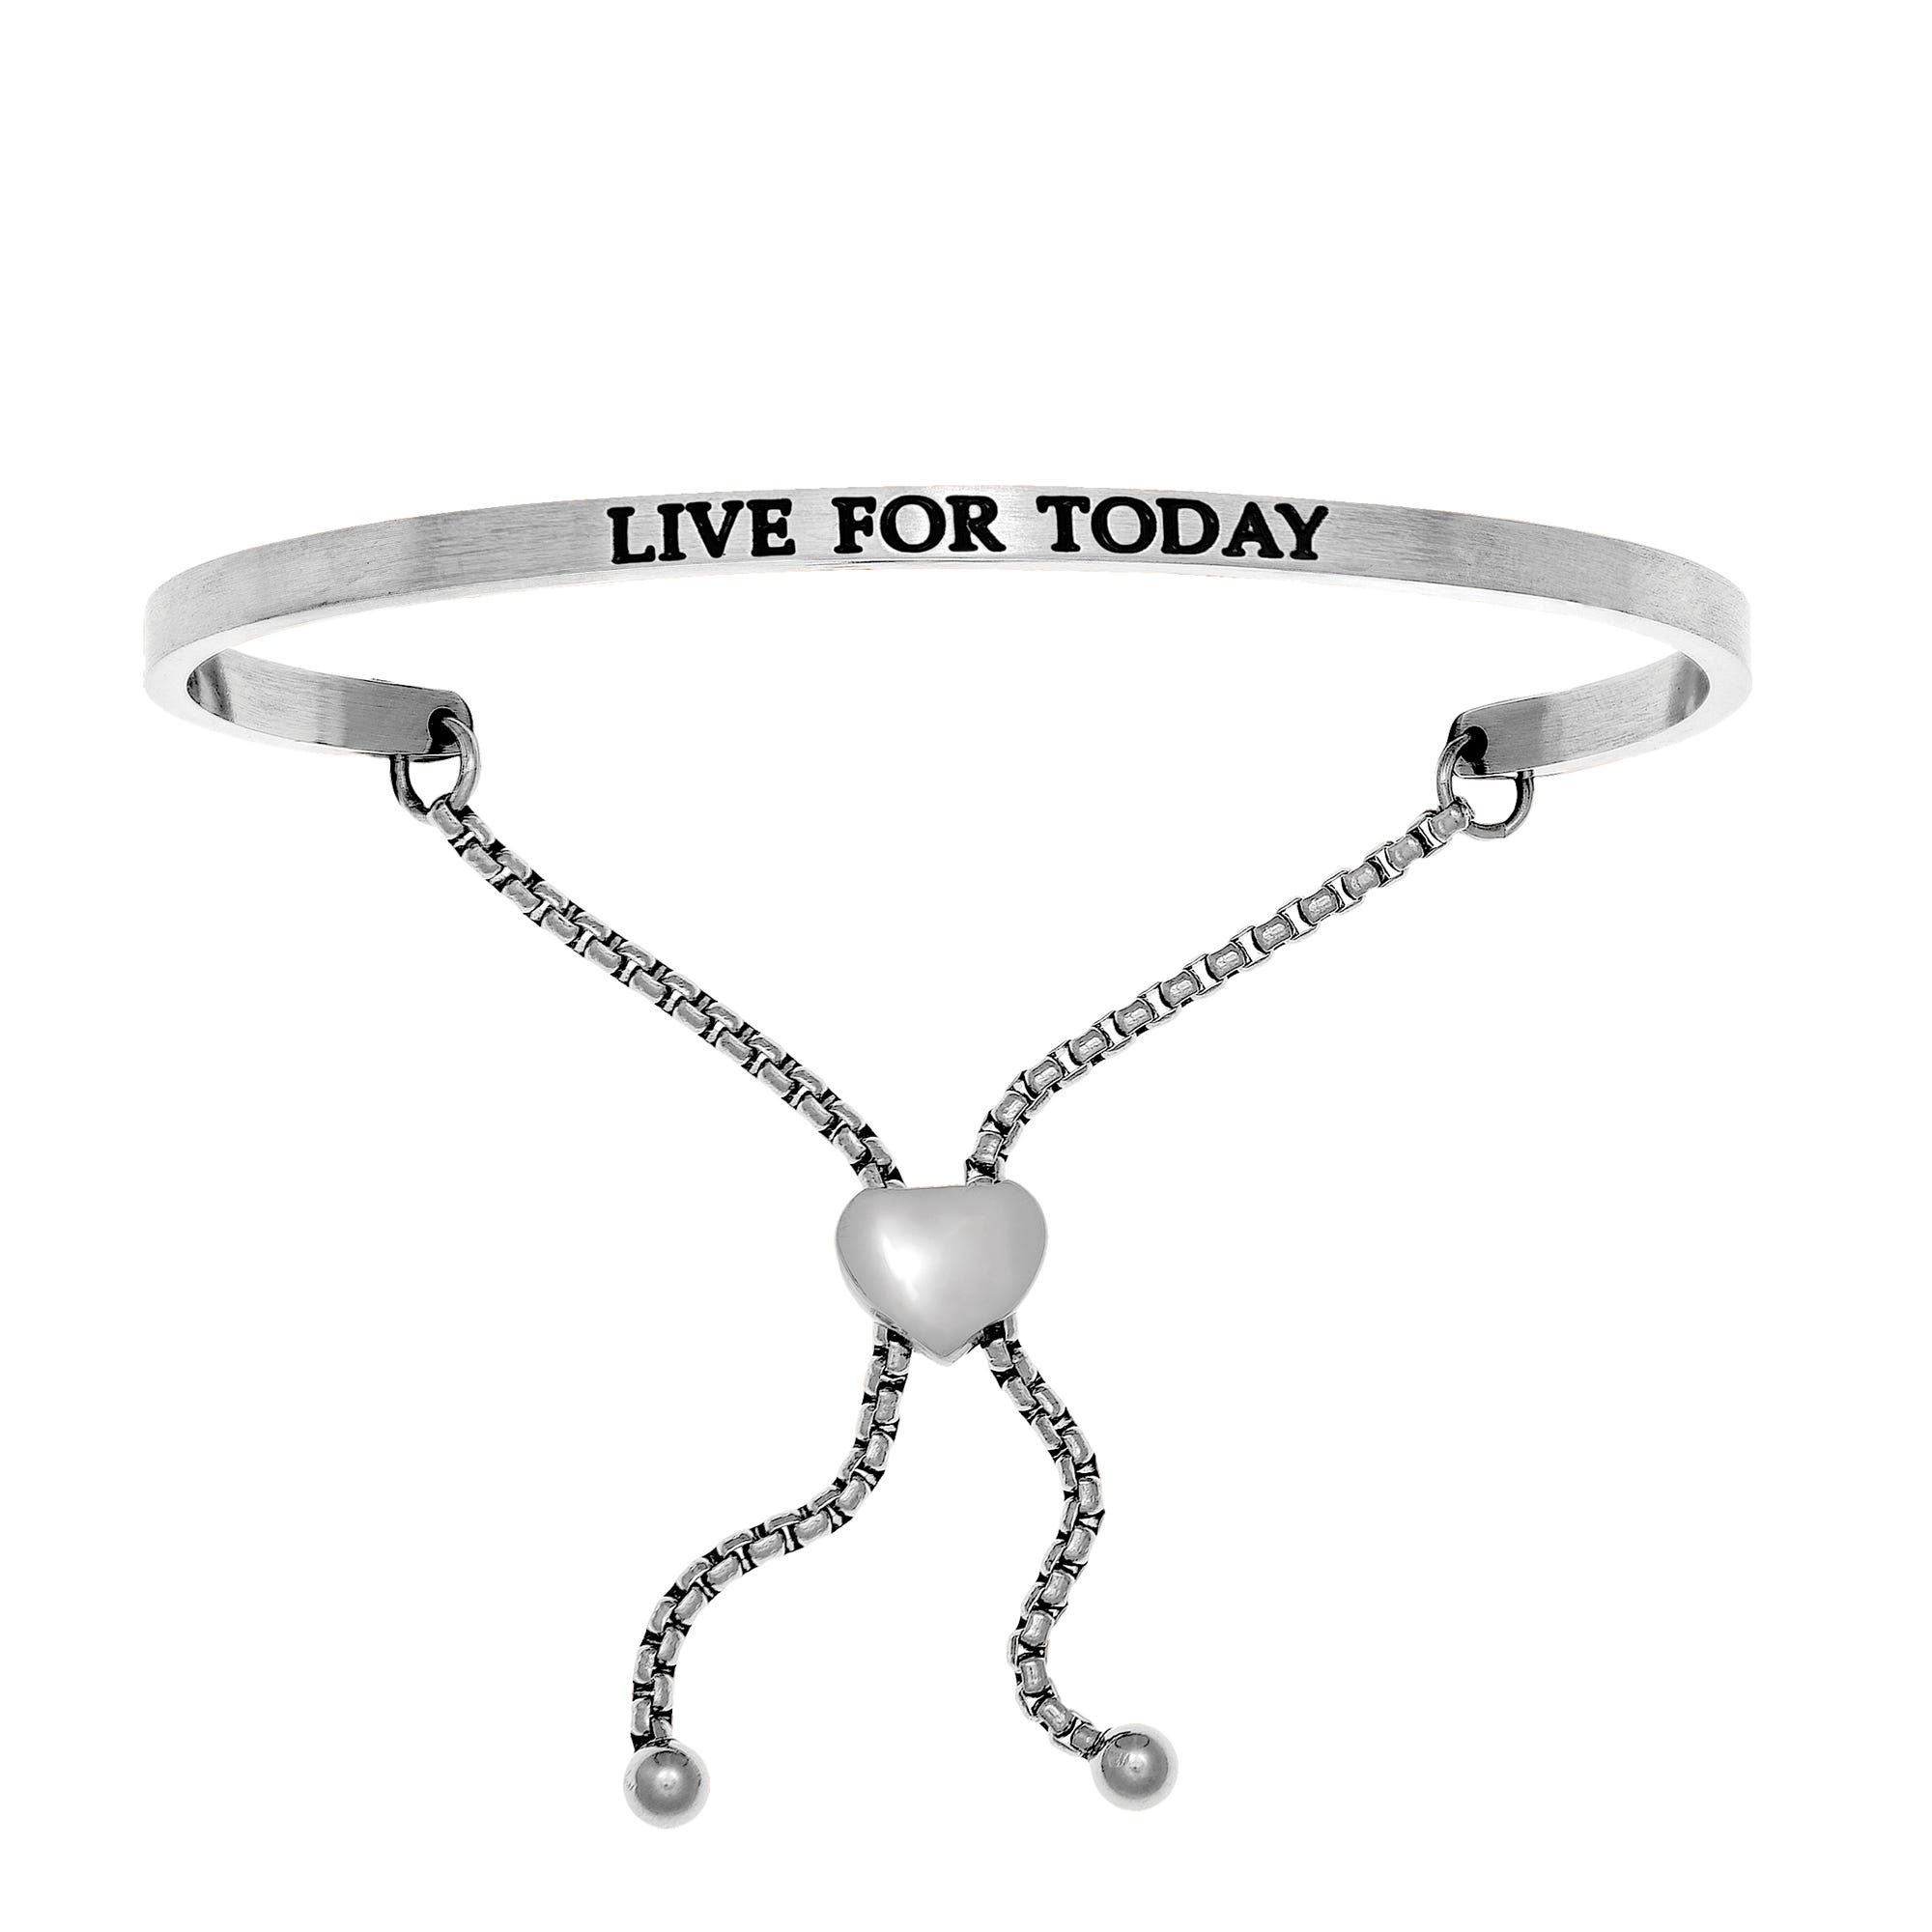 Live For Today. Intuitions Bolo Bracelet in White Stainless Steel